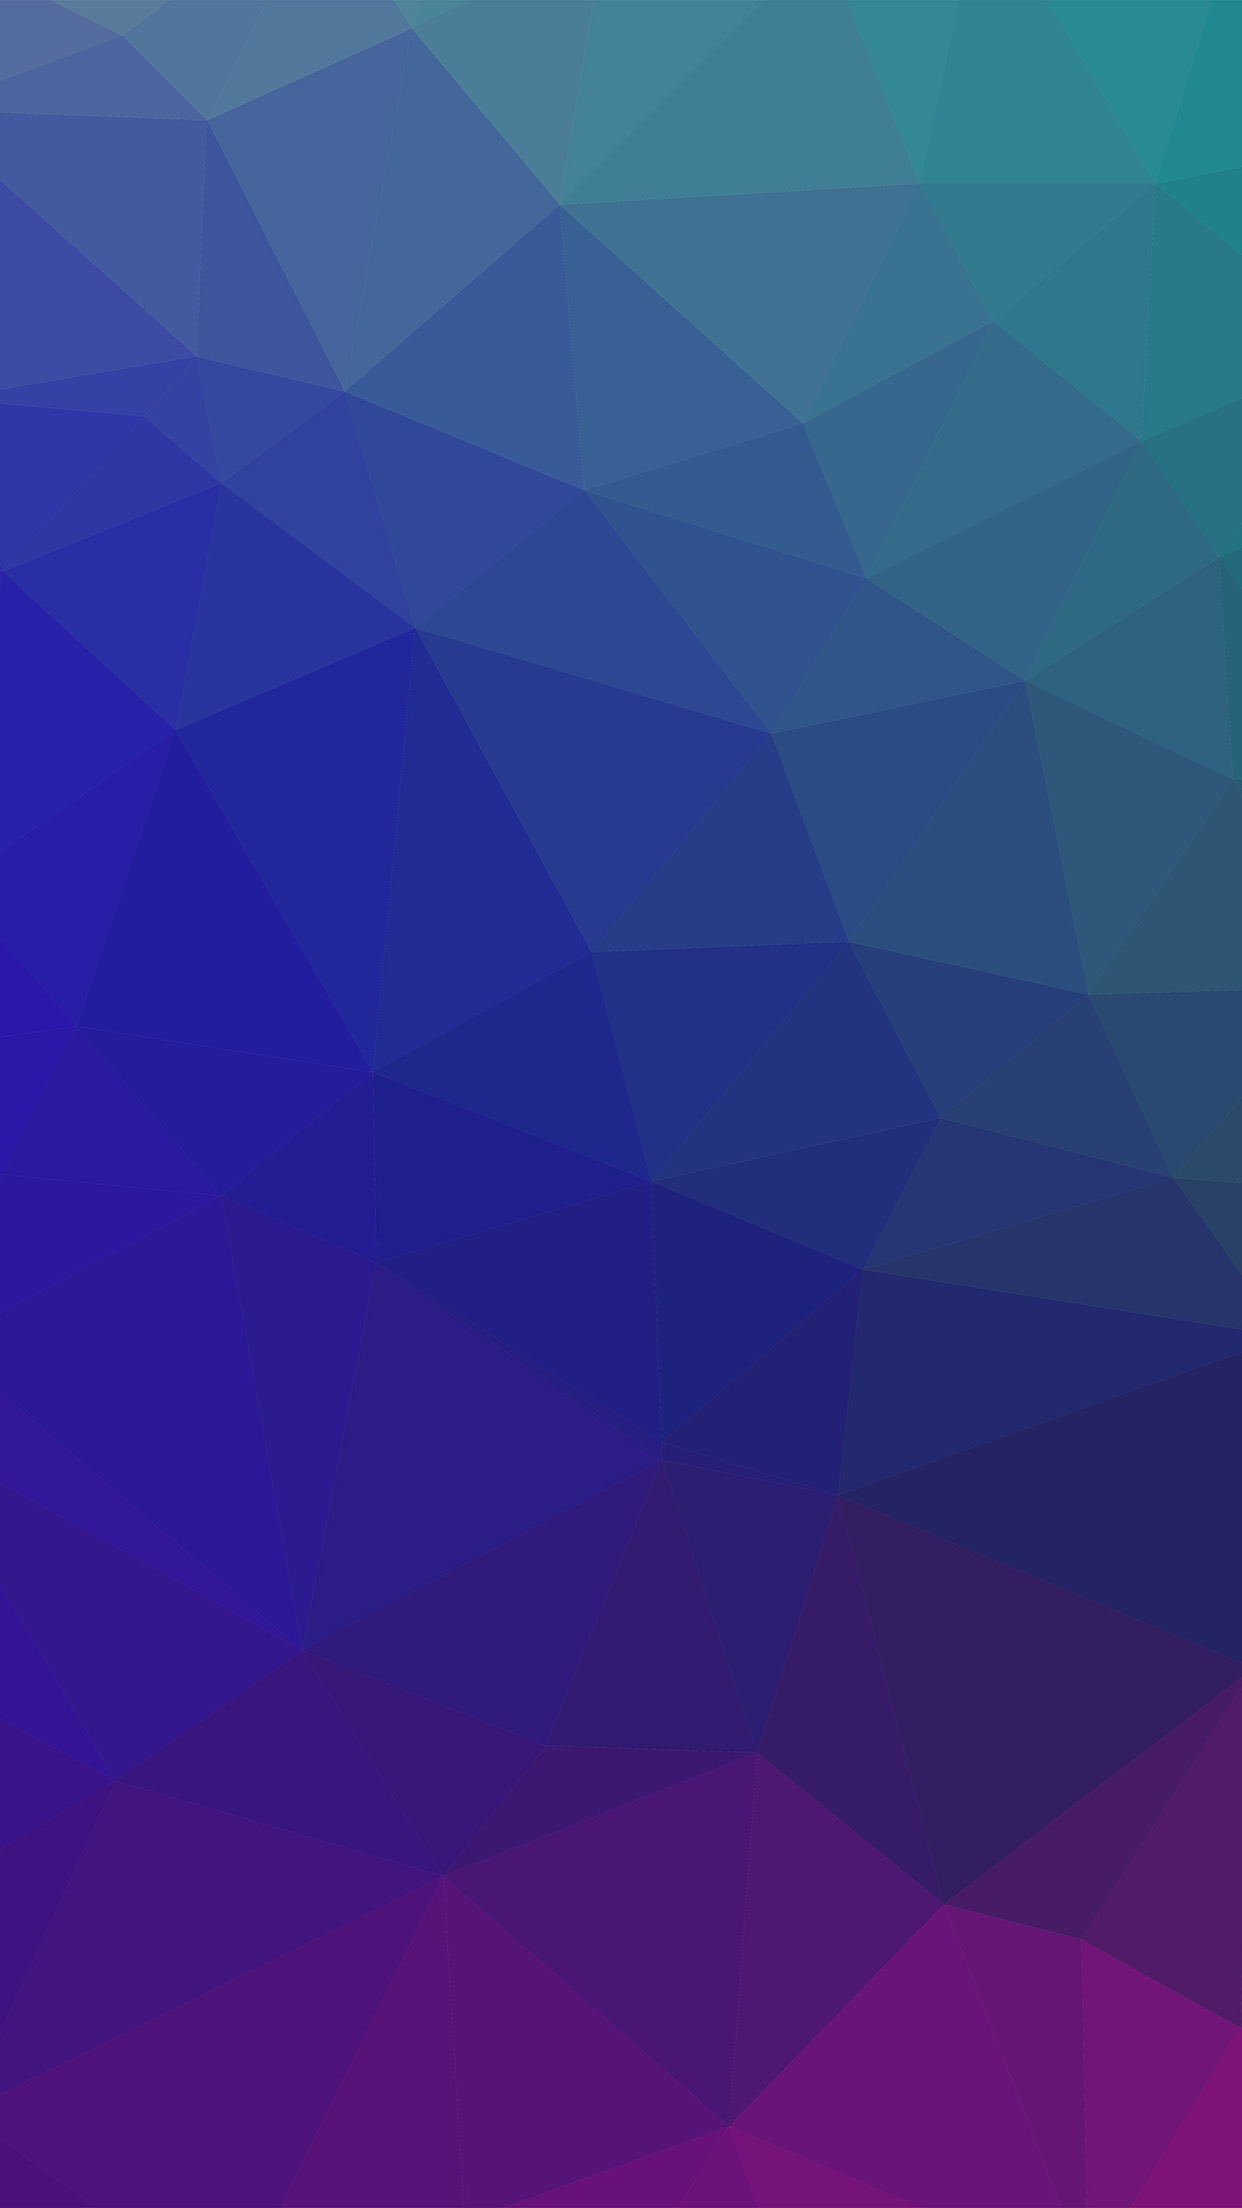 papers.co vk62 samsung galaxy polyart dark blue purple pattern 34 iphone6 plus wallpaper